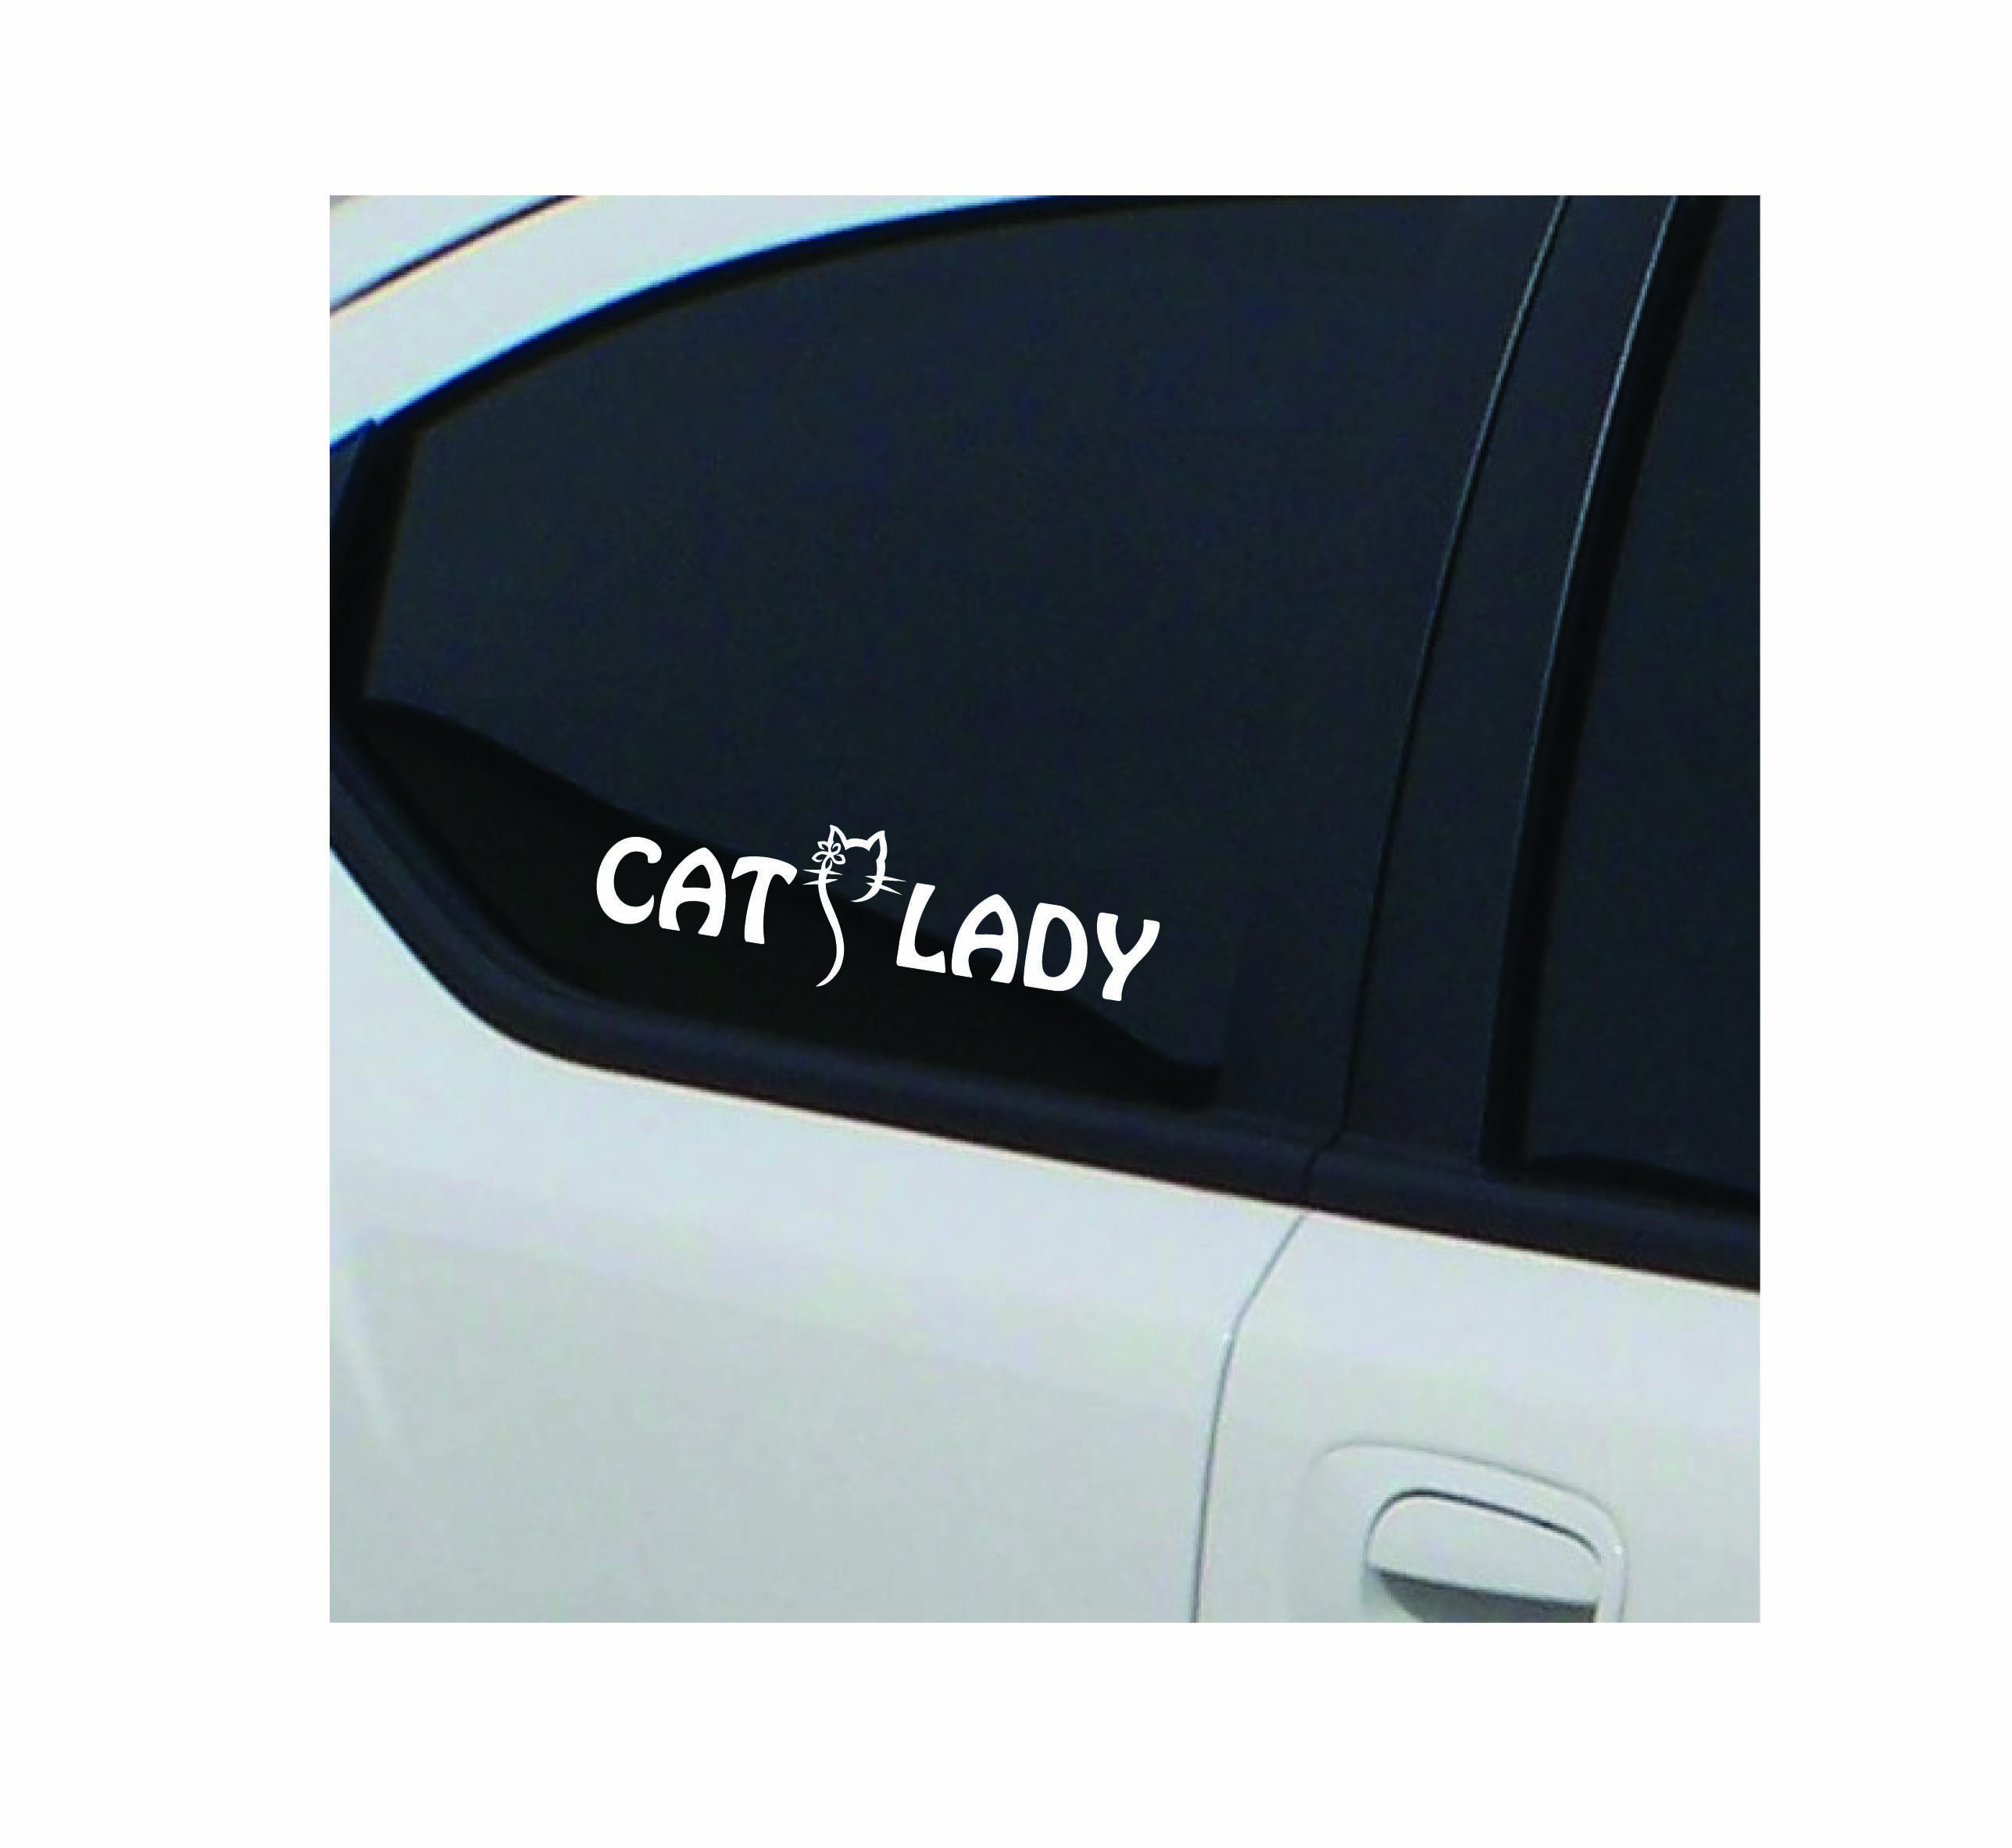 Cat Lady Decal Cat Lady Samsung Galaxy Phone Decals [ 2365 x 2575 Pixel ]